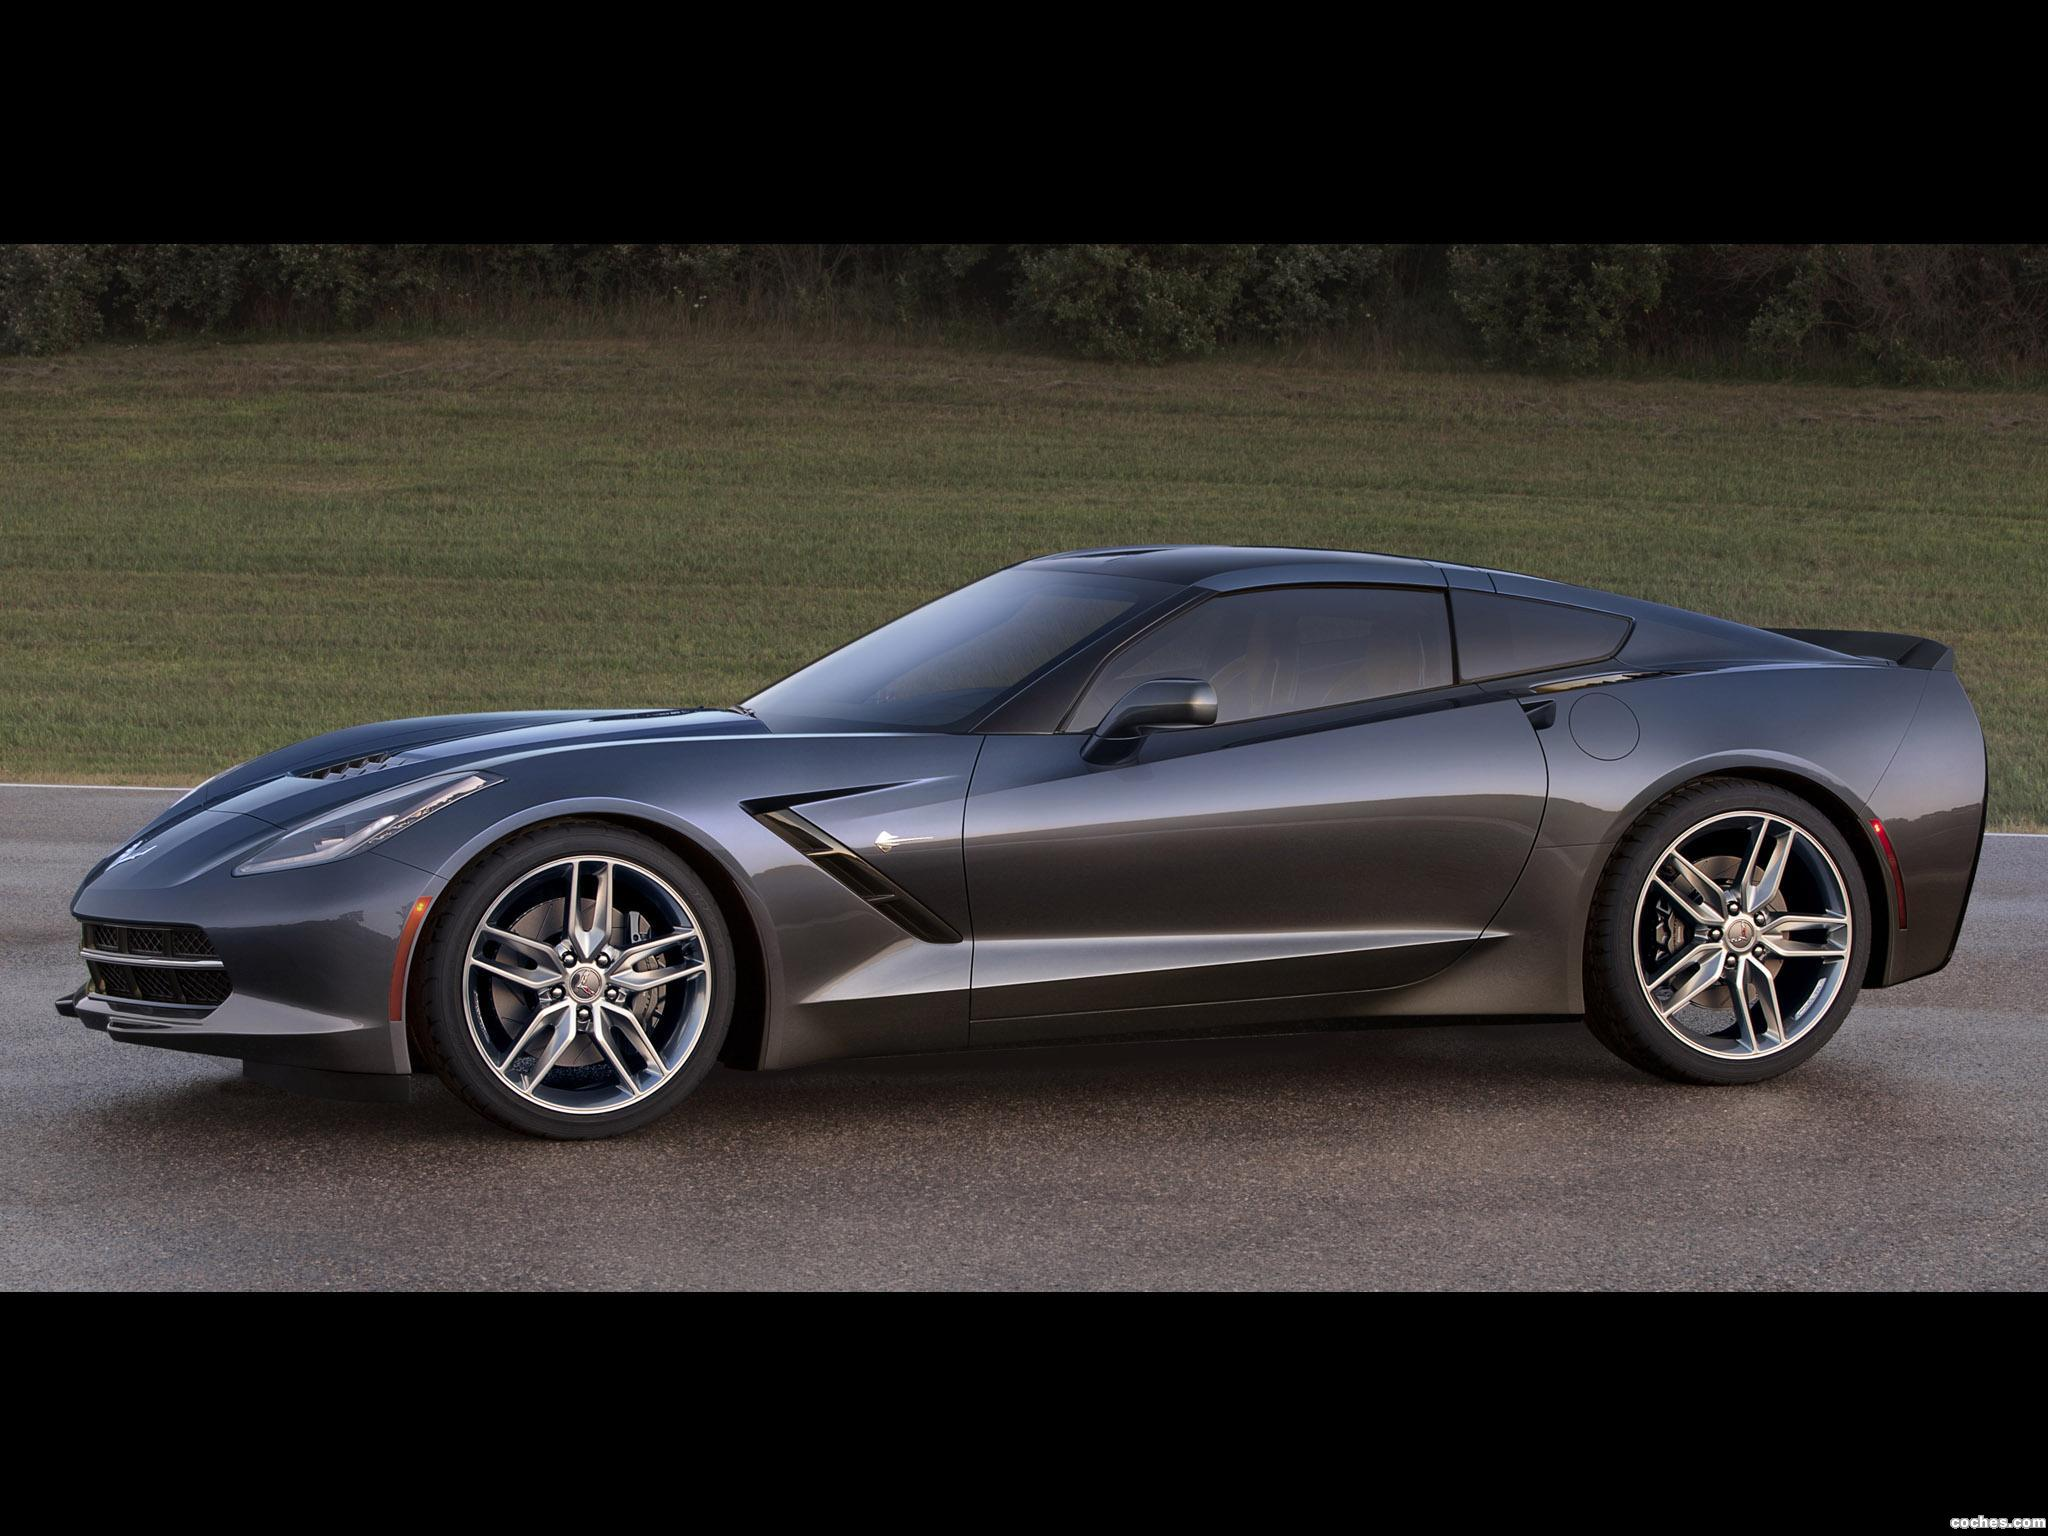 Foto 16 de Chevrolet Corvette Stingray C7 2014